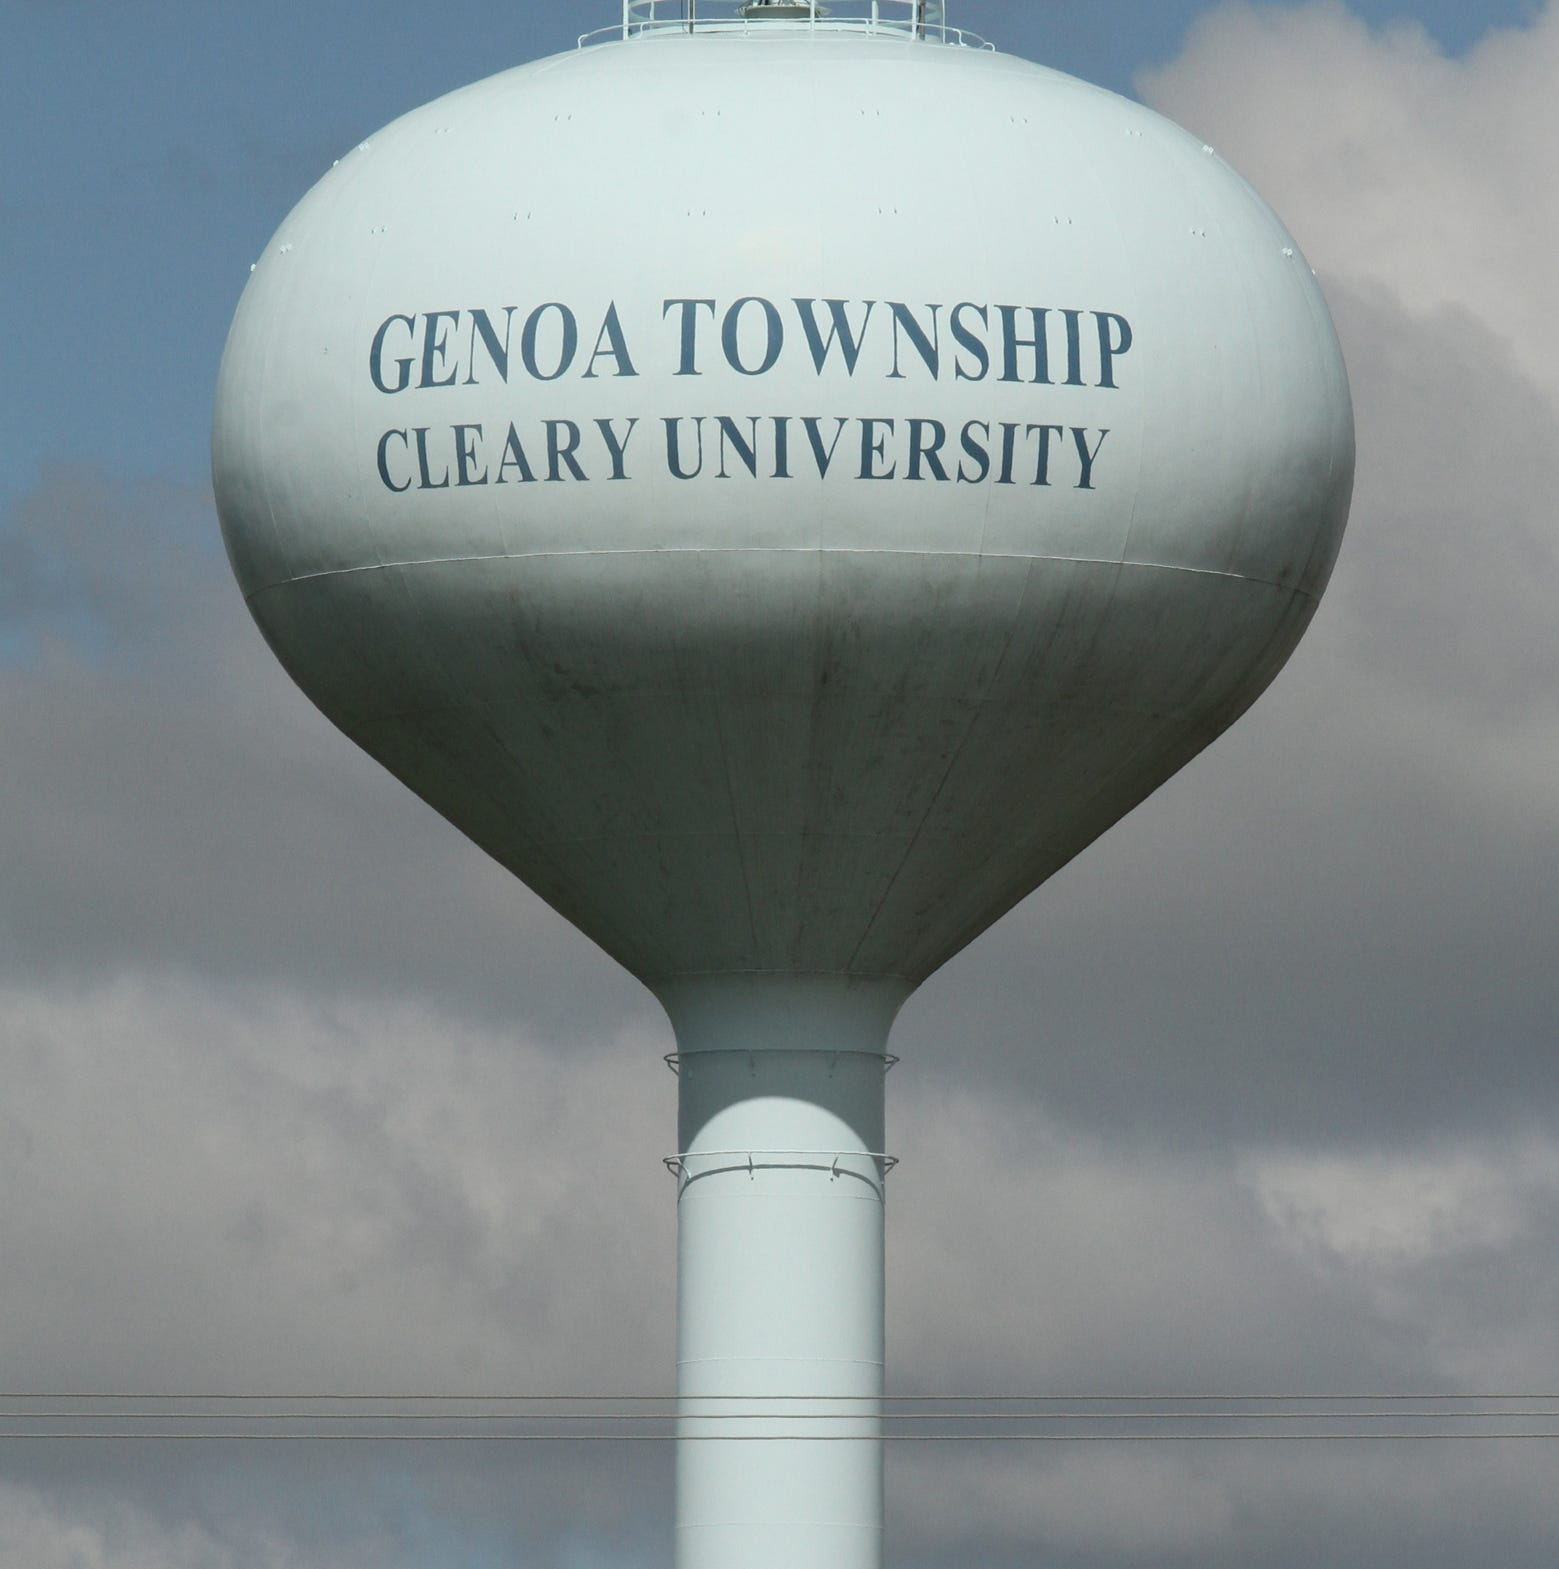 Recycling changes in Genoa Township being rolled out